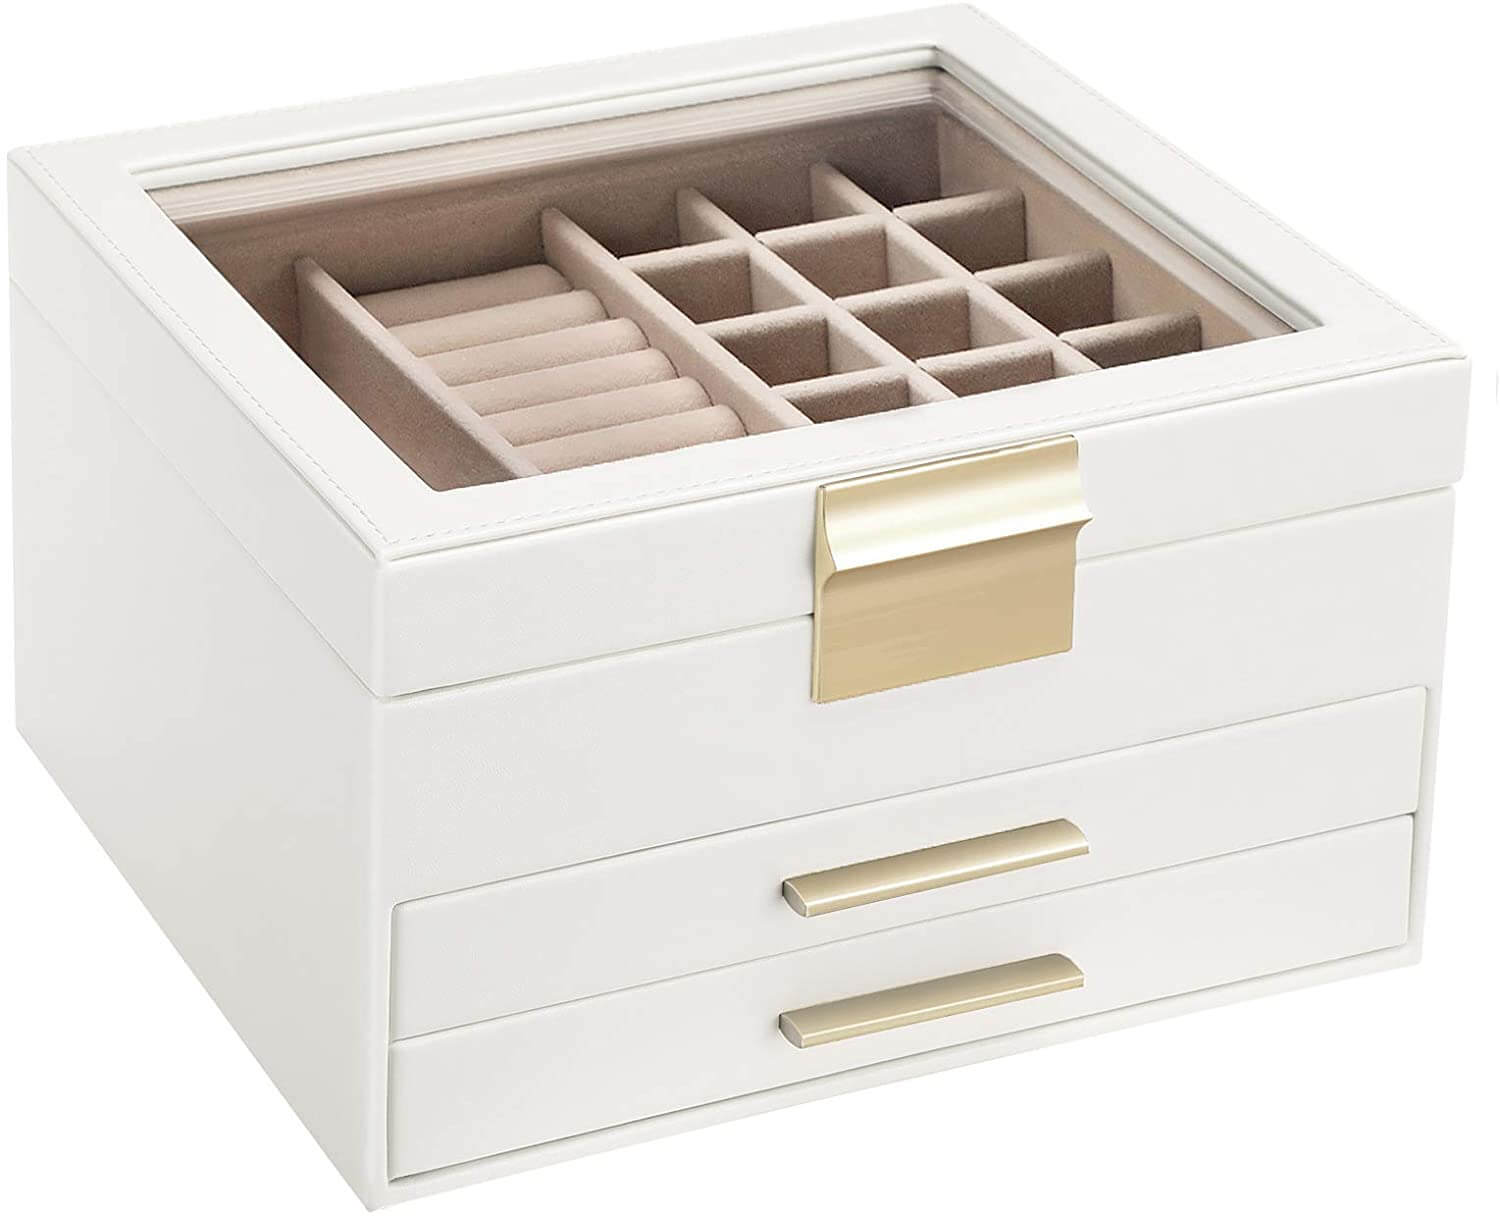 Enjoy fast, free nationwide shipping!  Owned by a husband and wife team of high-school music teachers, HawkinsWoodshop.com is your one stop shop for affordable furniture.  Shop HawkinsWoodshop.com for solid wood & metal modern, traditional, contemporary, industrial, custom, rustic, and farmhouse furniture including our 3 Layer Jewelry Box with Glass Lid.